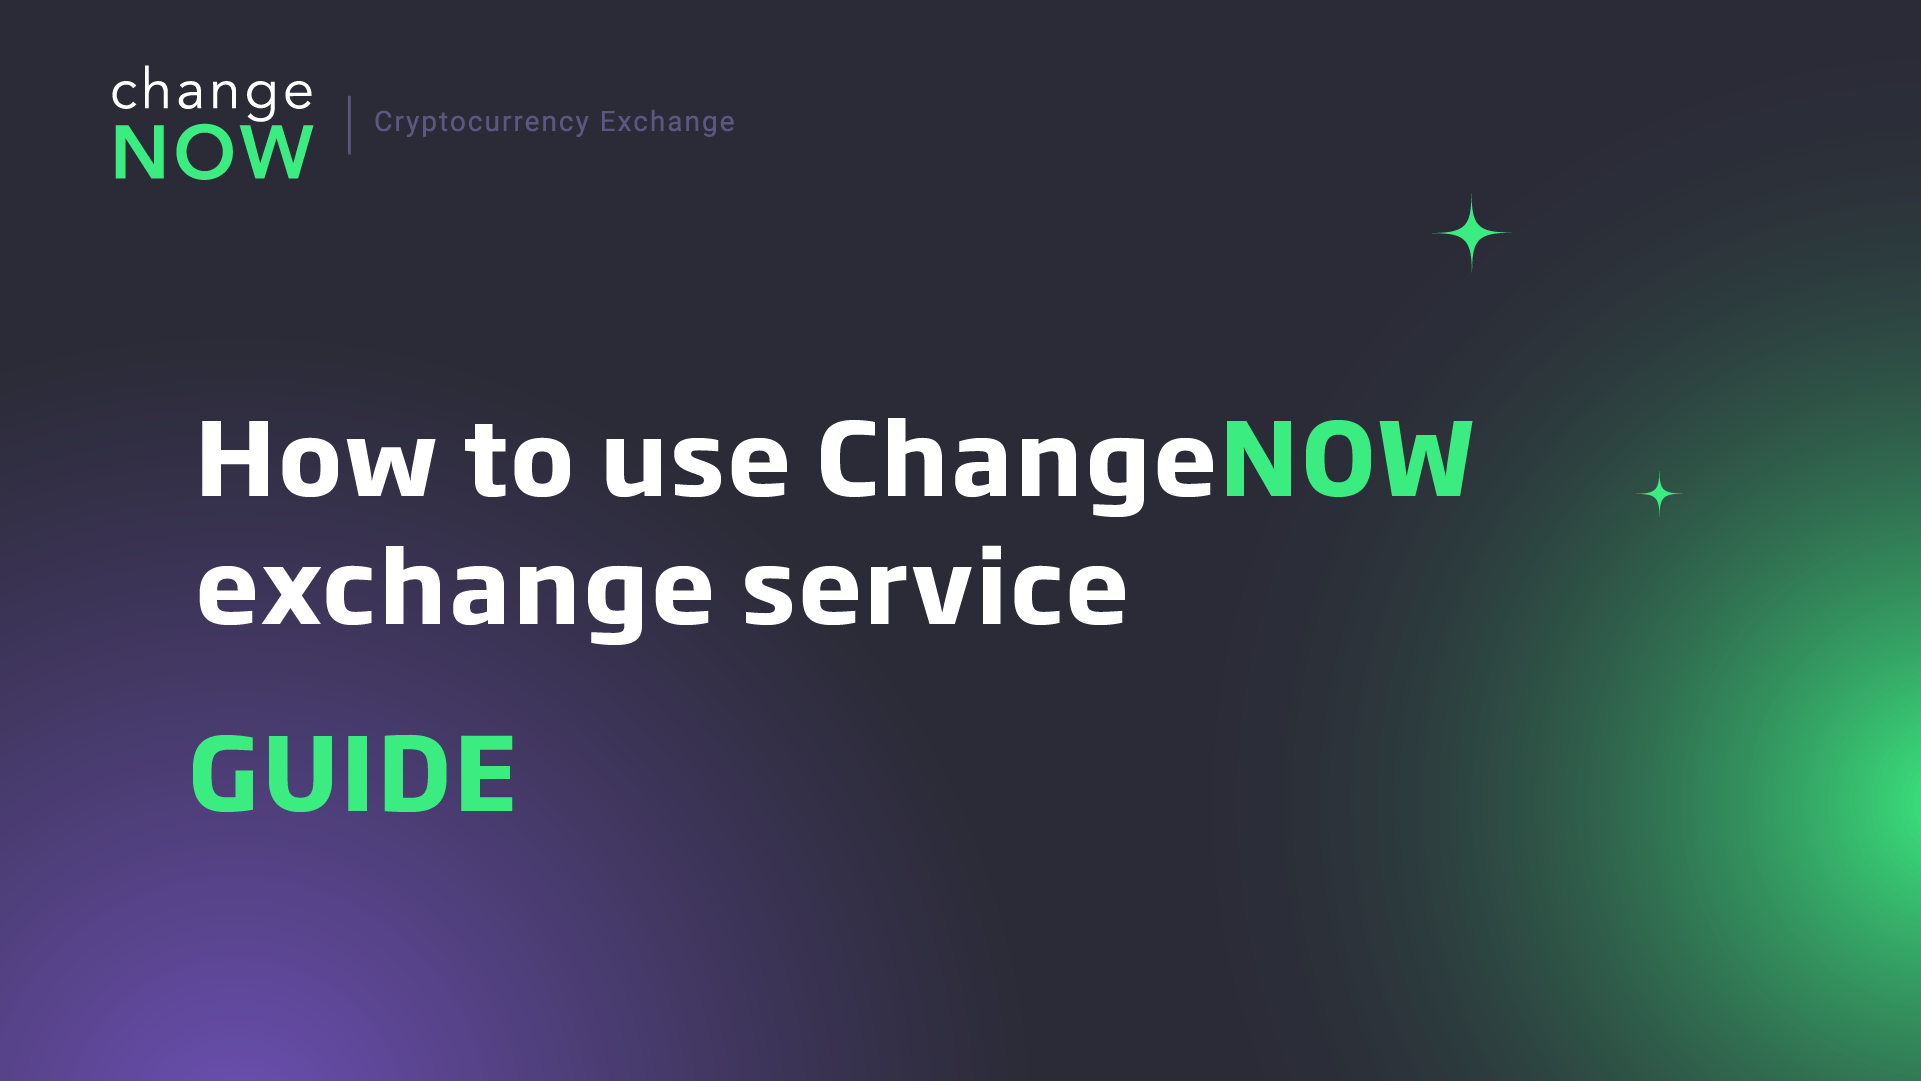 How to use ChangeNOW exchange service [GUIDE]